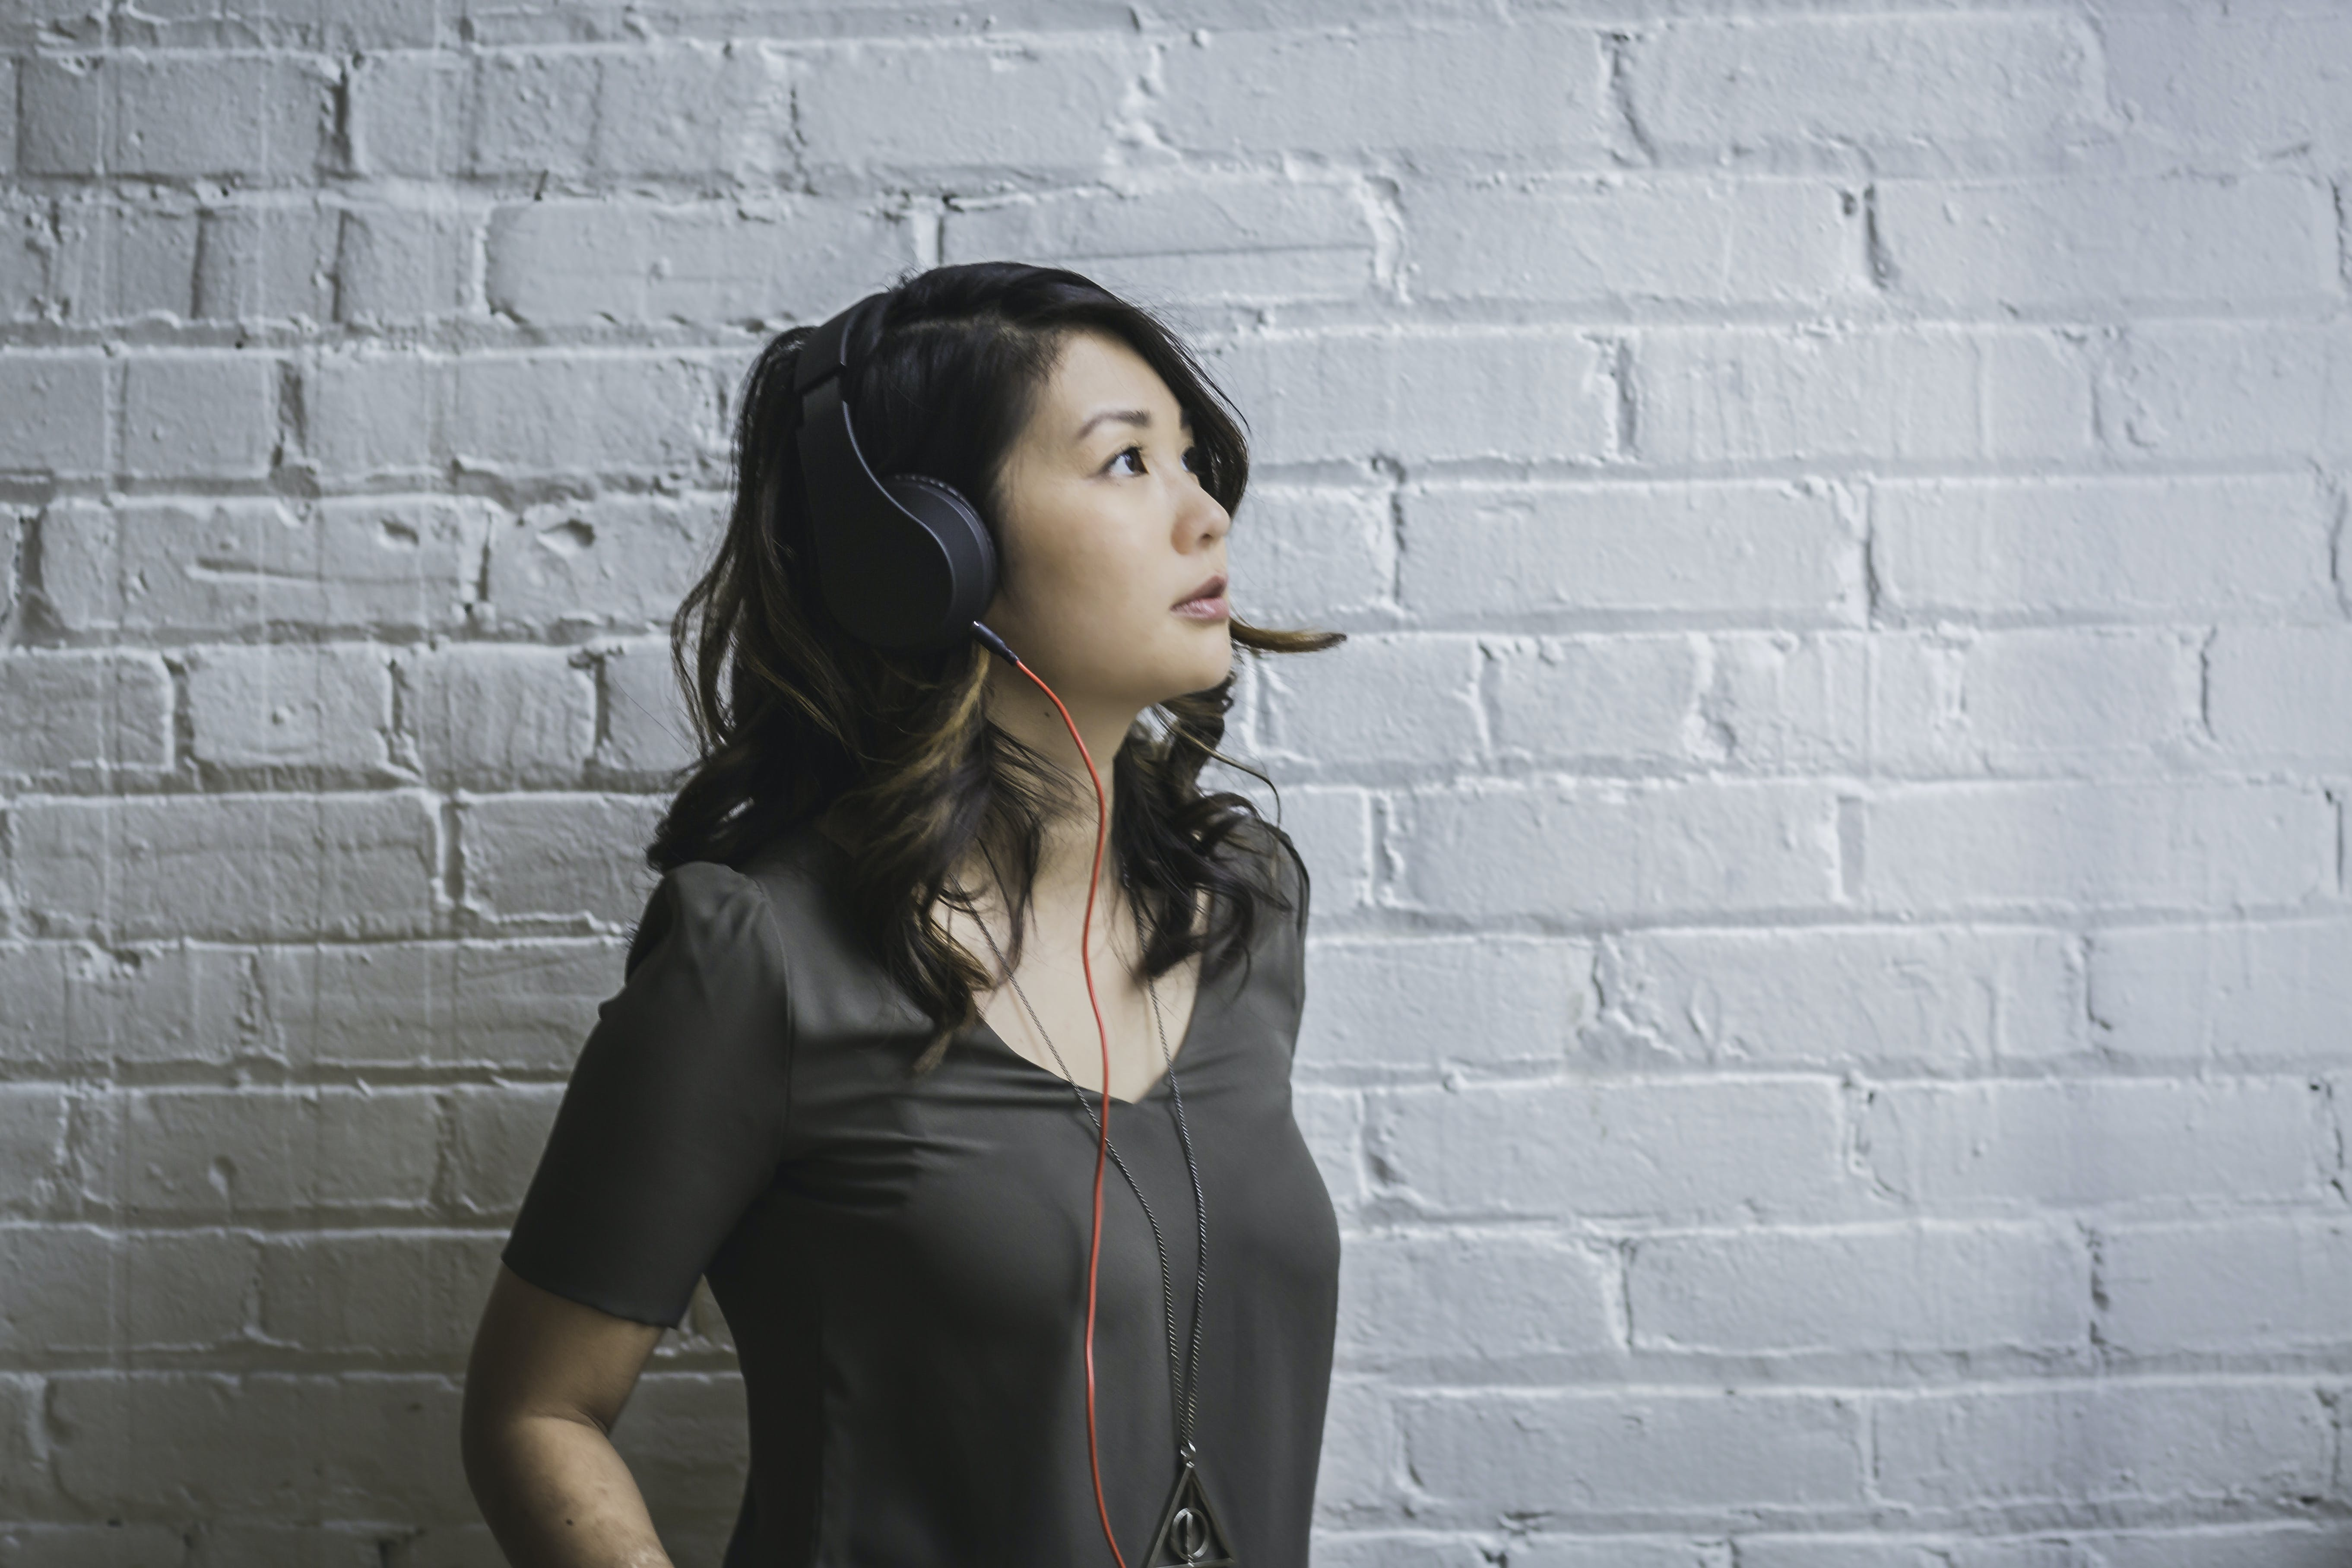 Woman Looking Up While Wearing Headphones